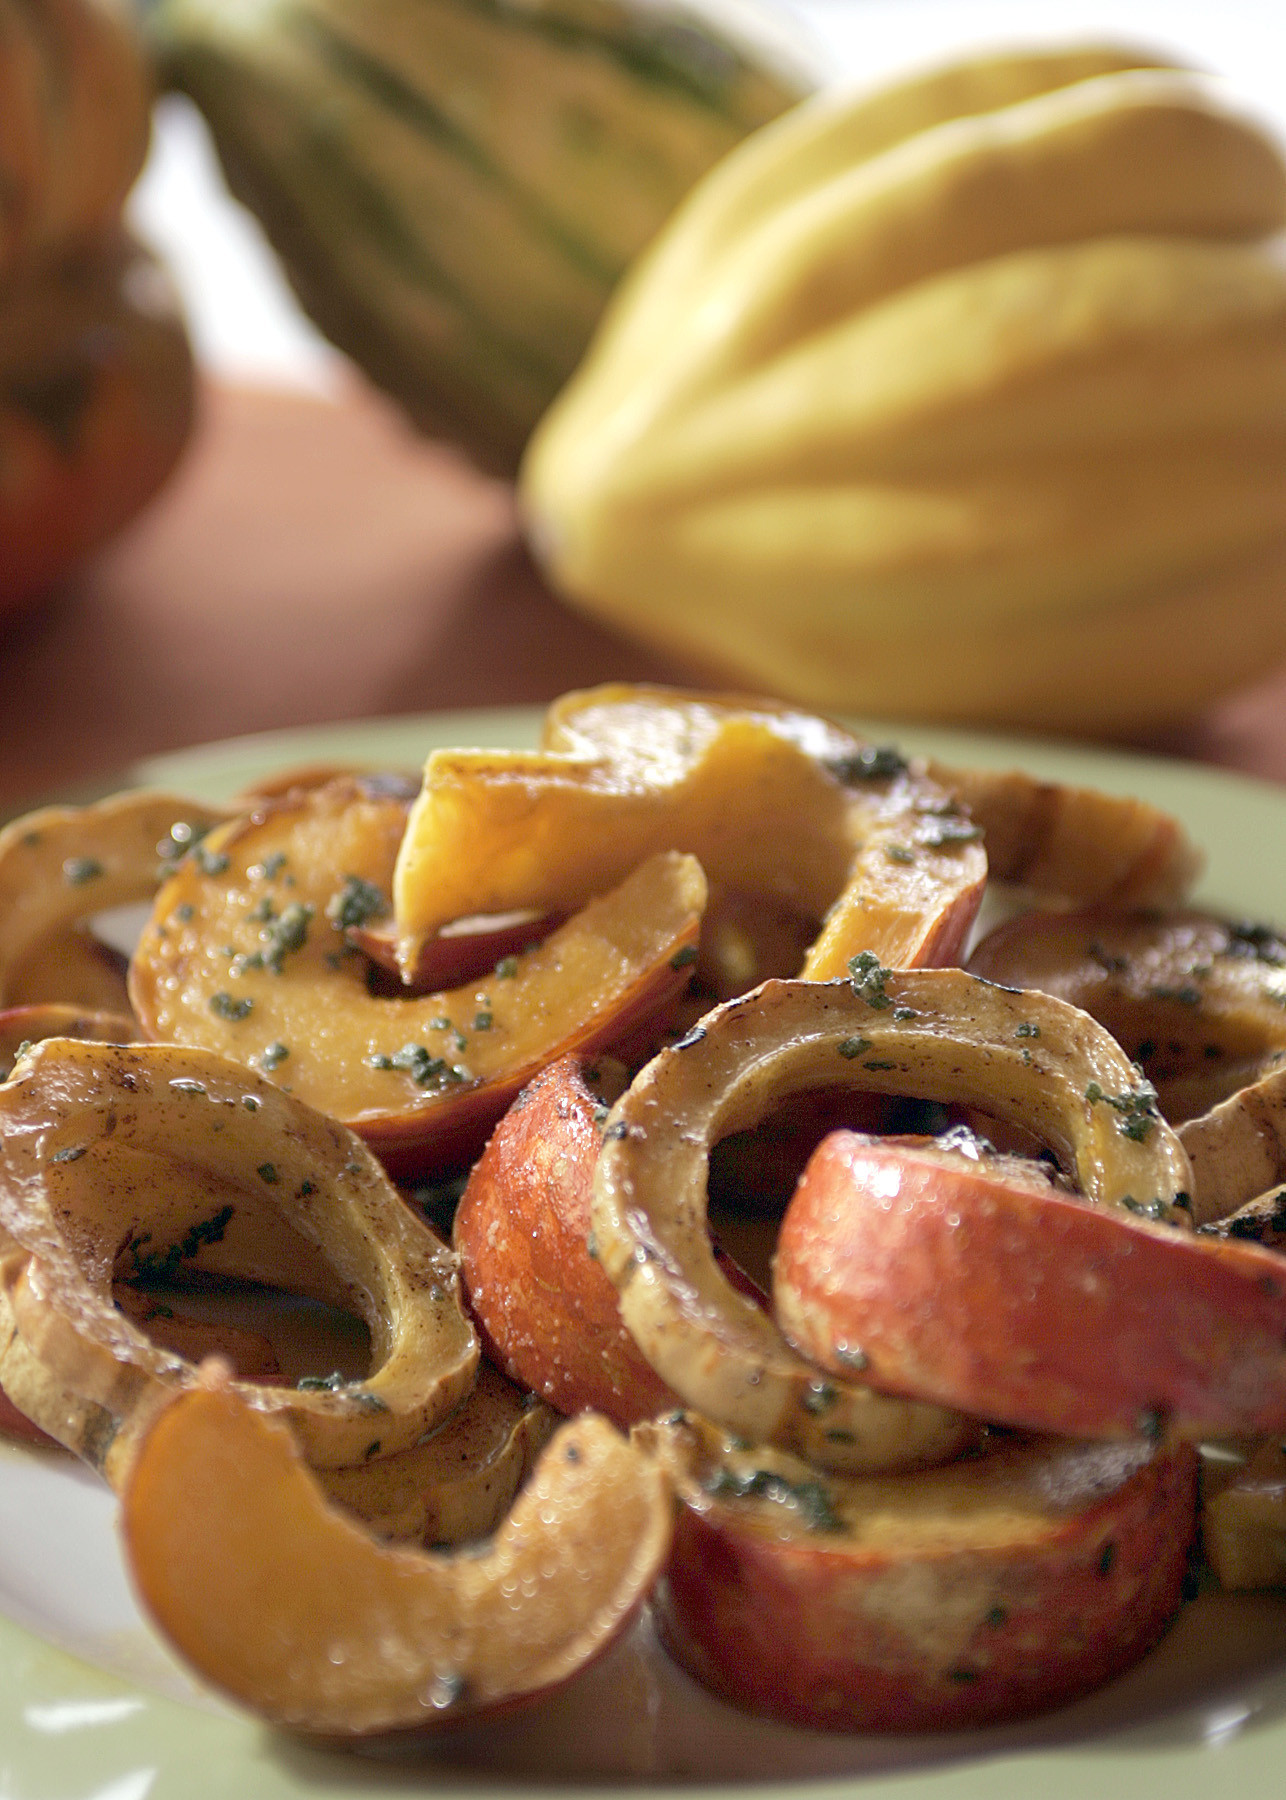 Photos: 97 great Thanksgiving recipes - Squash baked with sage and chile butter